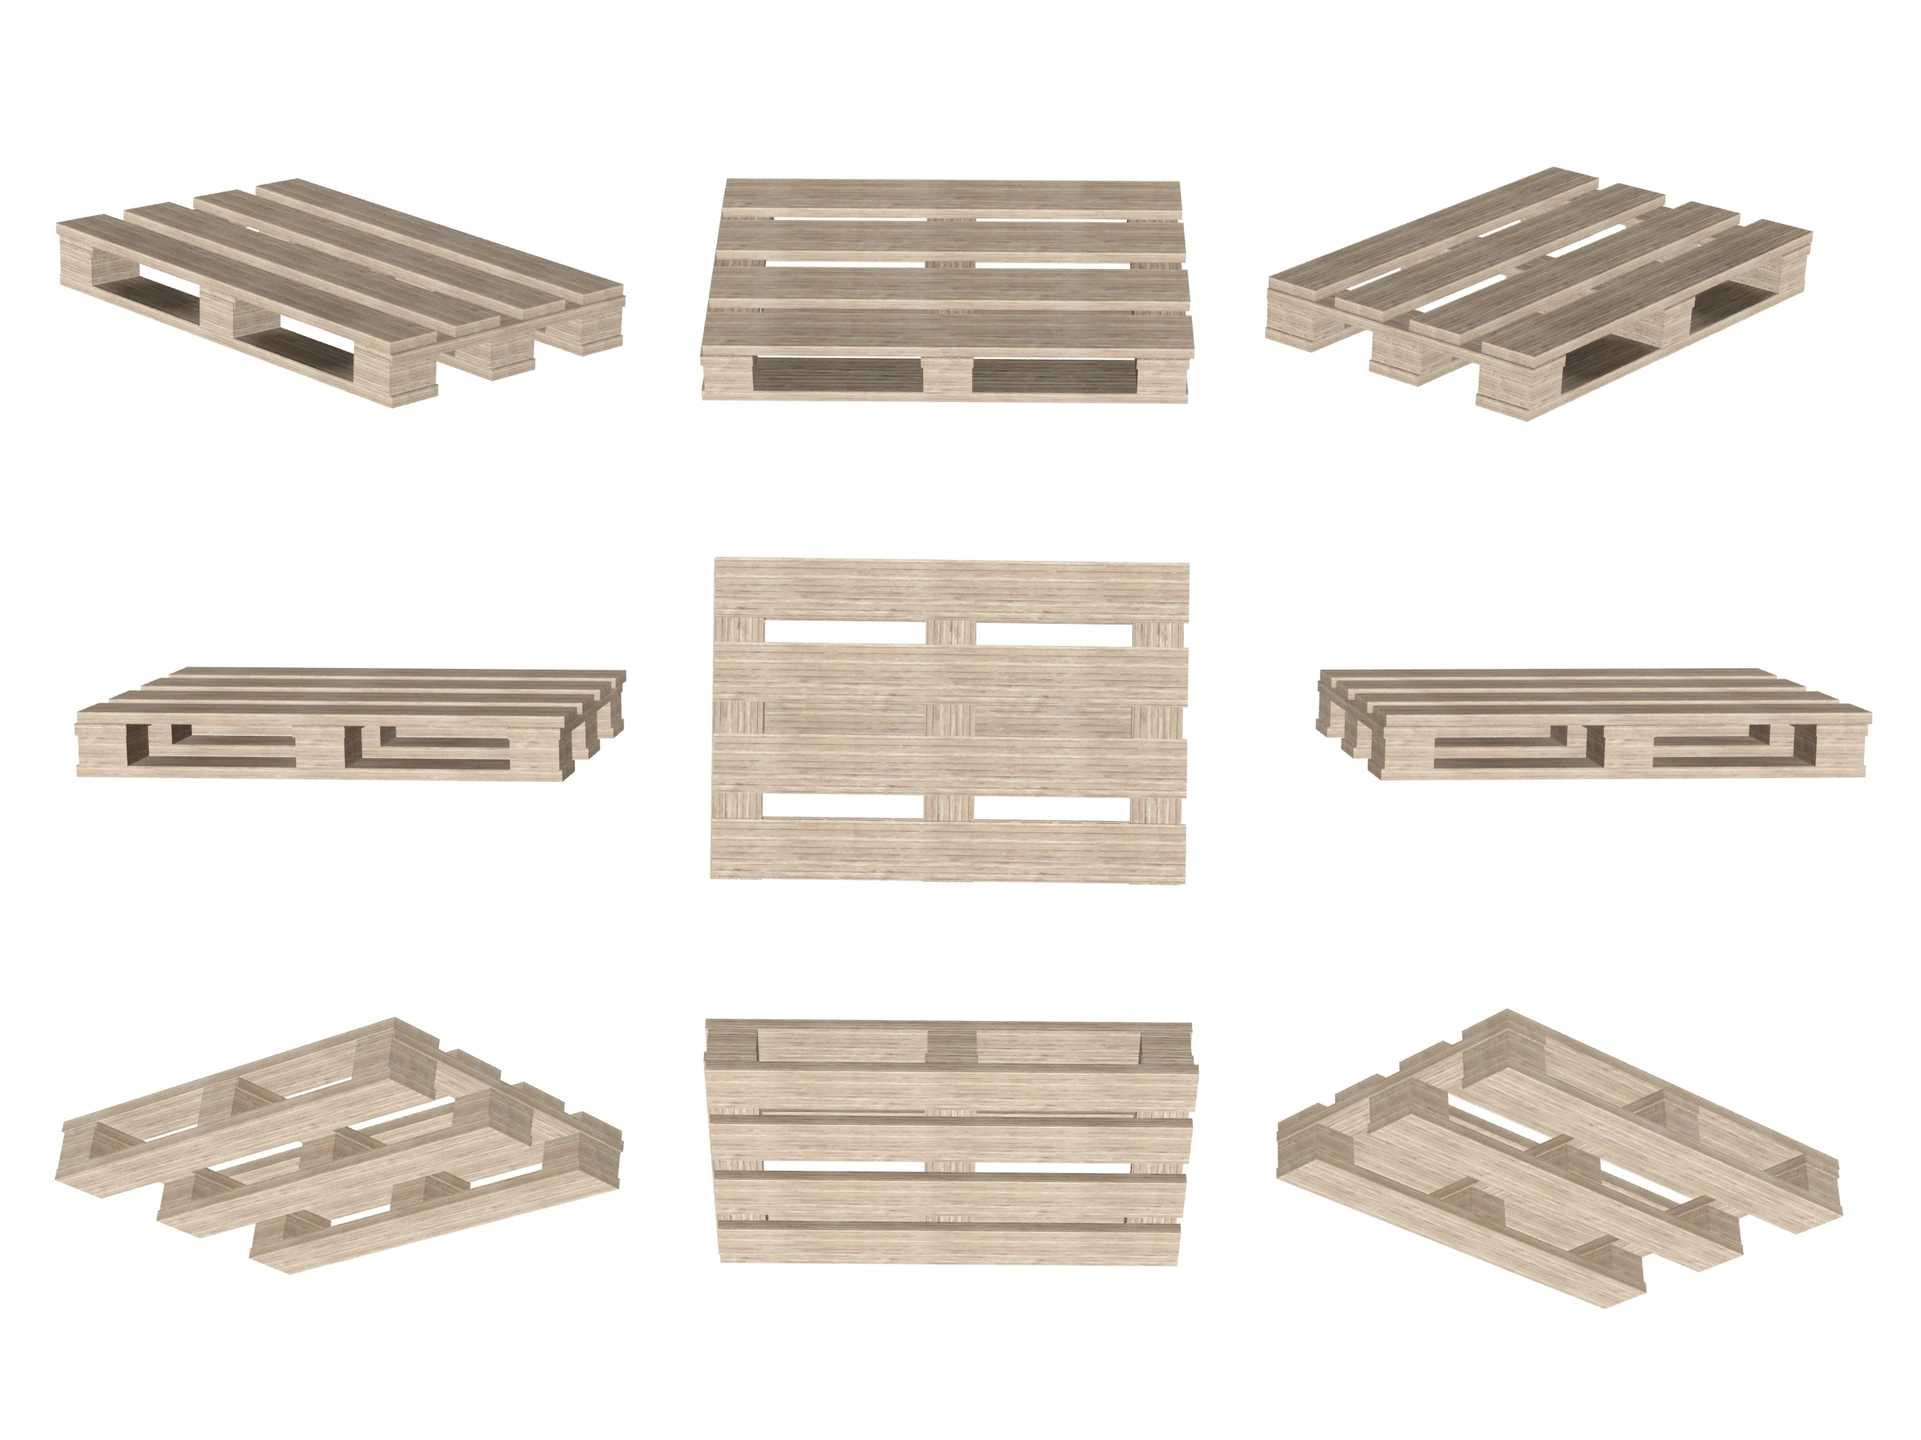 Quality Recycled & Used Pallets Grade A / #1 Delivered Fast & Free to anywhere in the Minneapolis & St. Paul, MN. Grade #1 & Grade #2 Used Pallets Always Available!